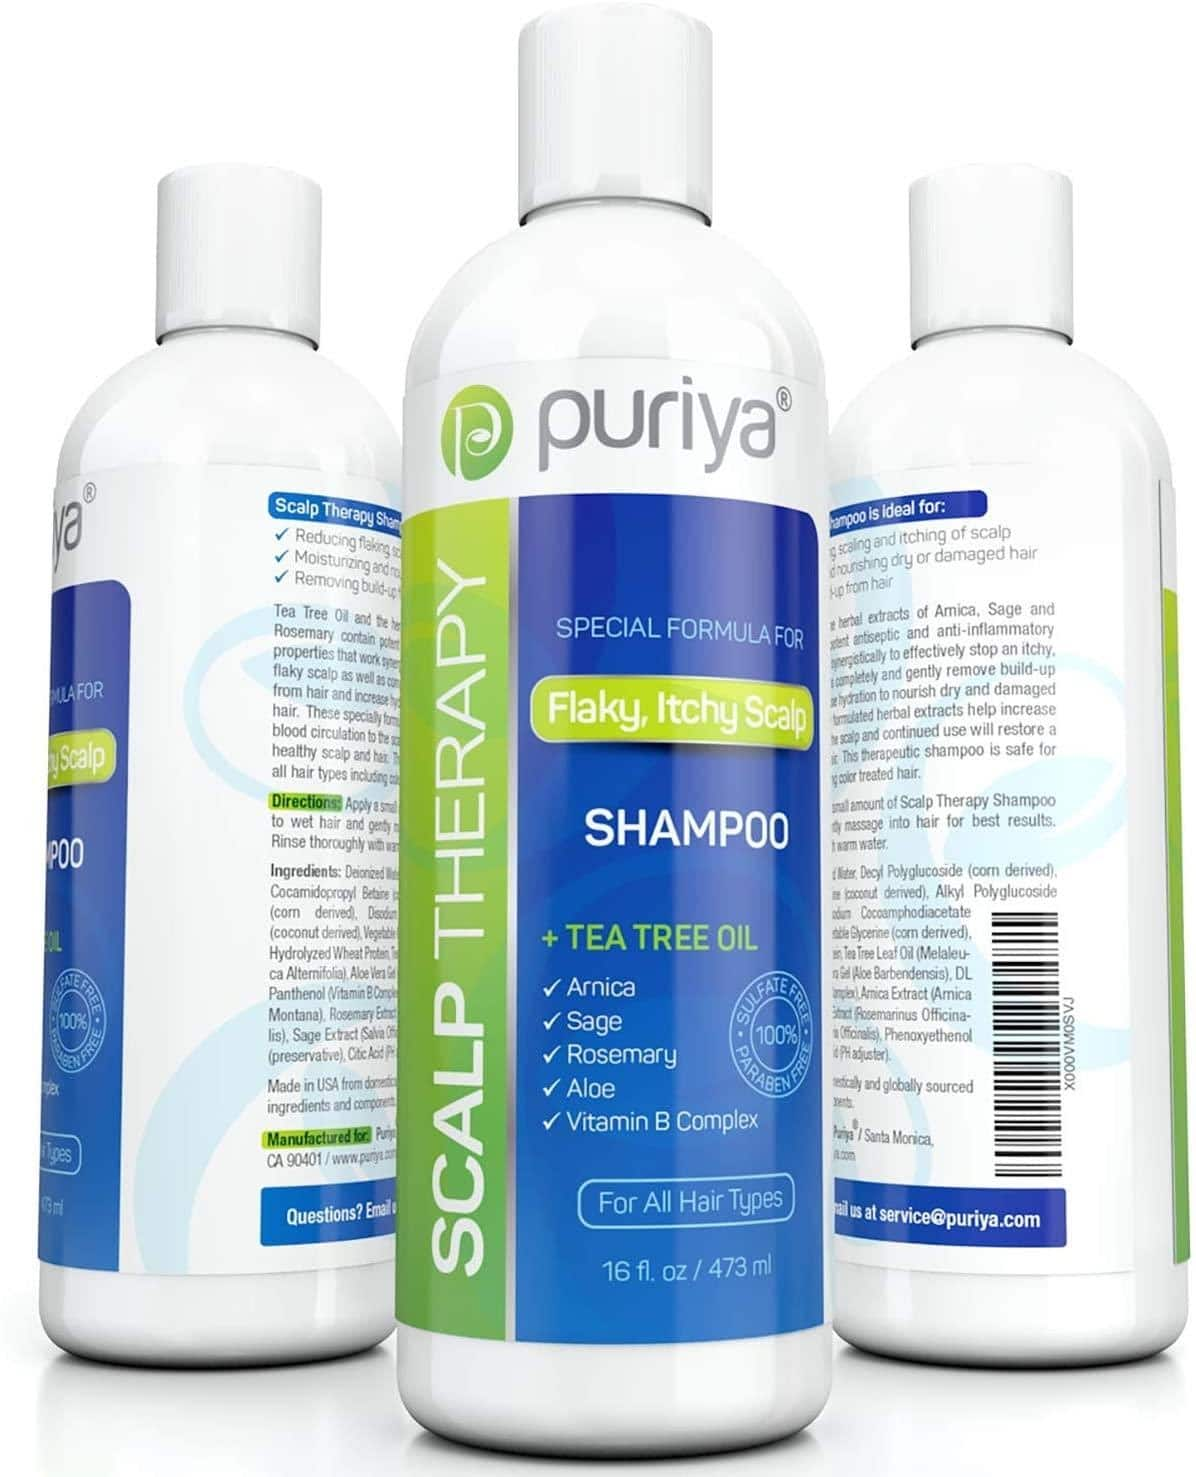 Best Shampoo For Treating Folliculitis